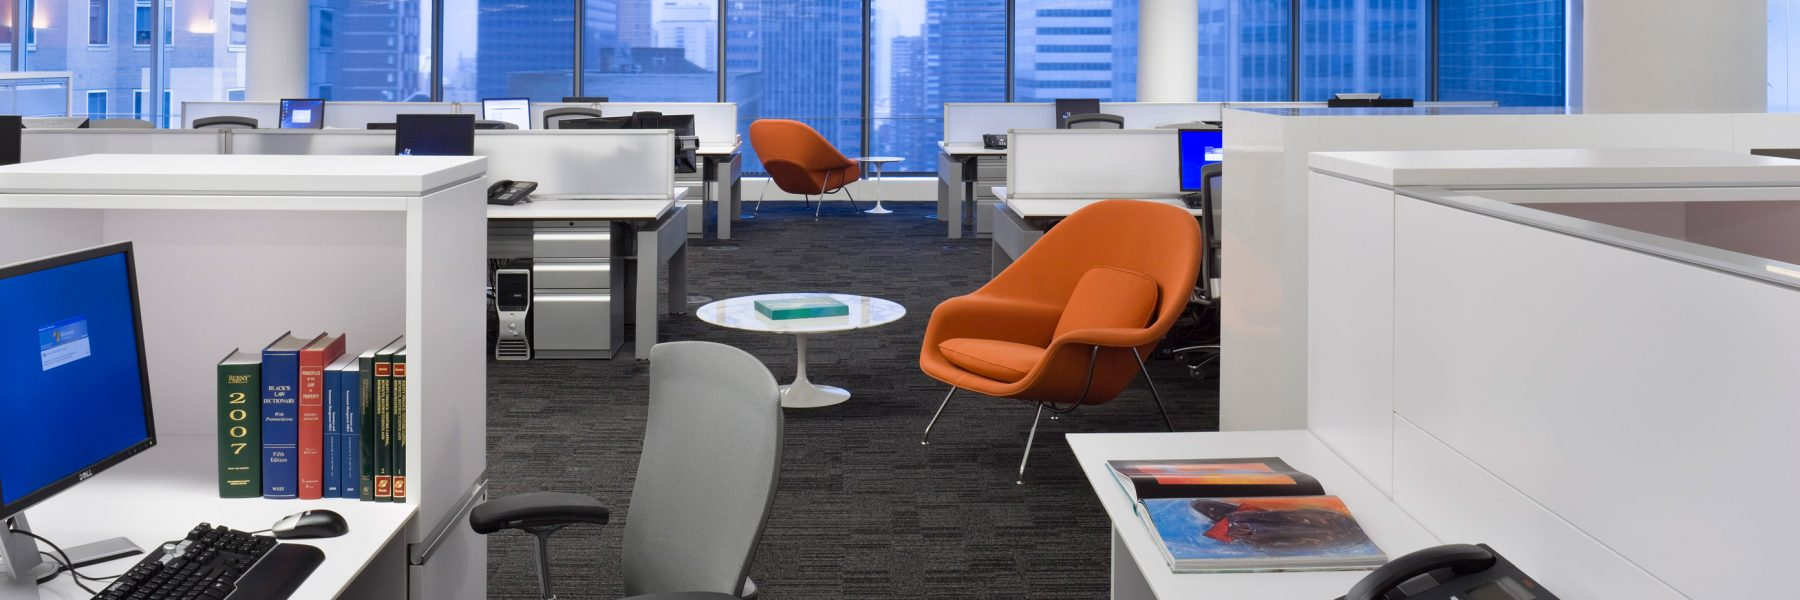 Impact culture with the latest trends in furniture and design.